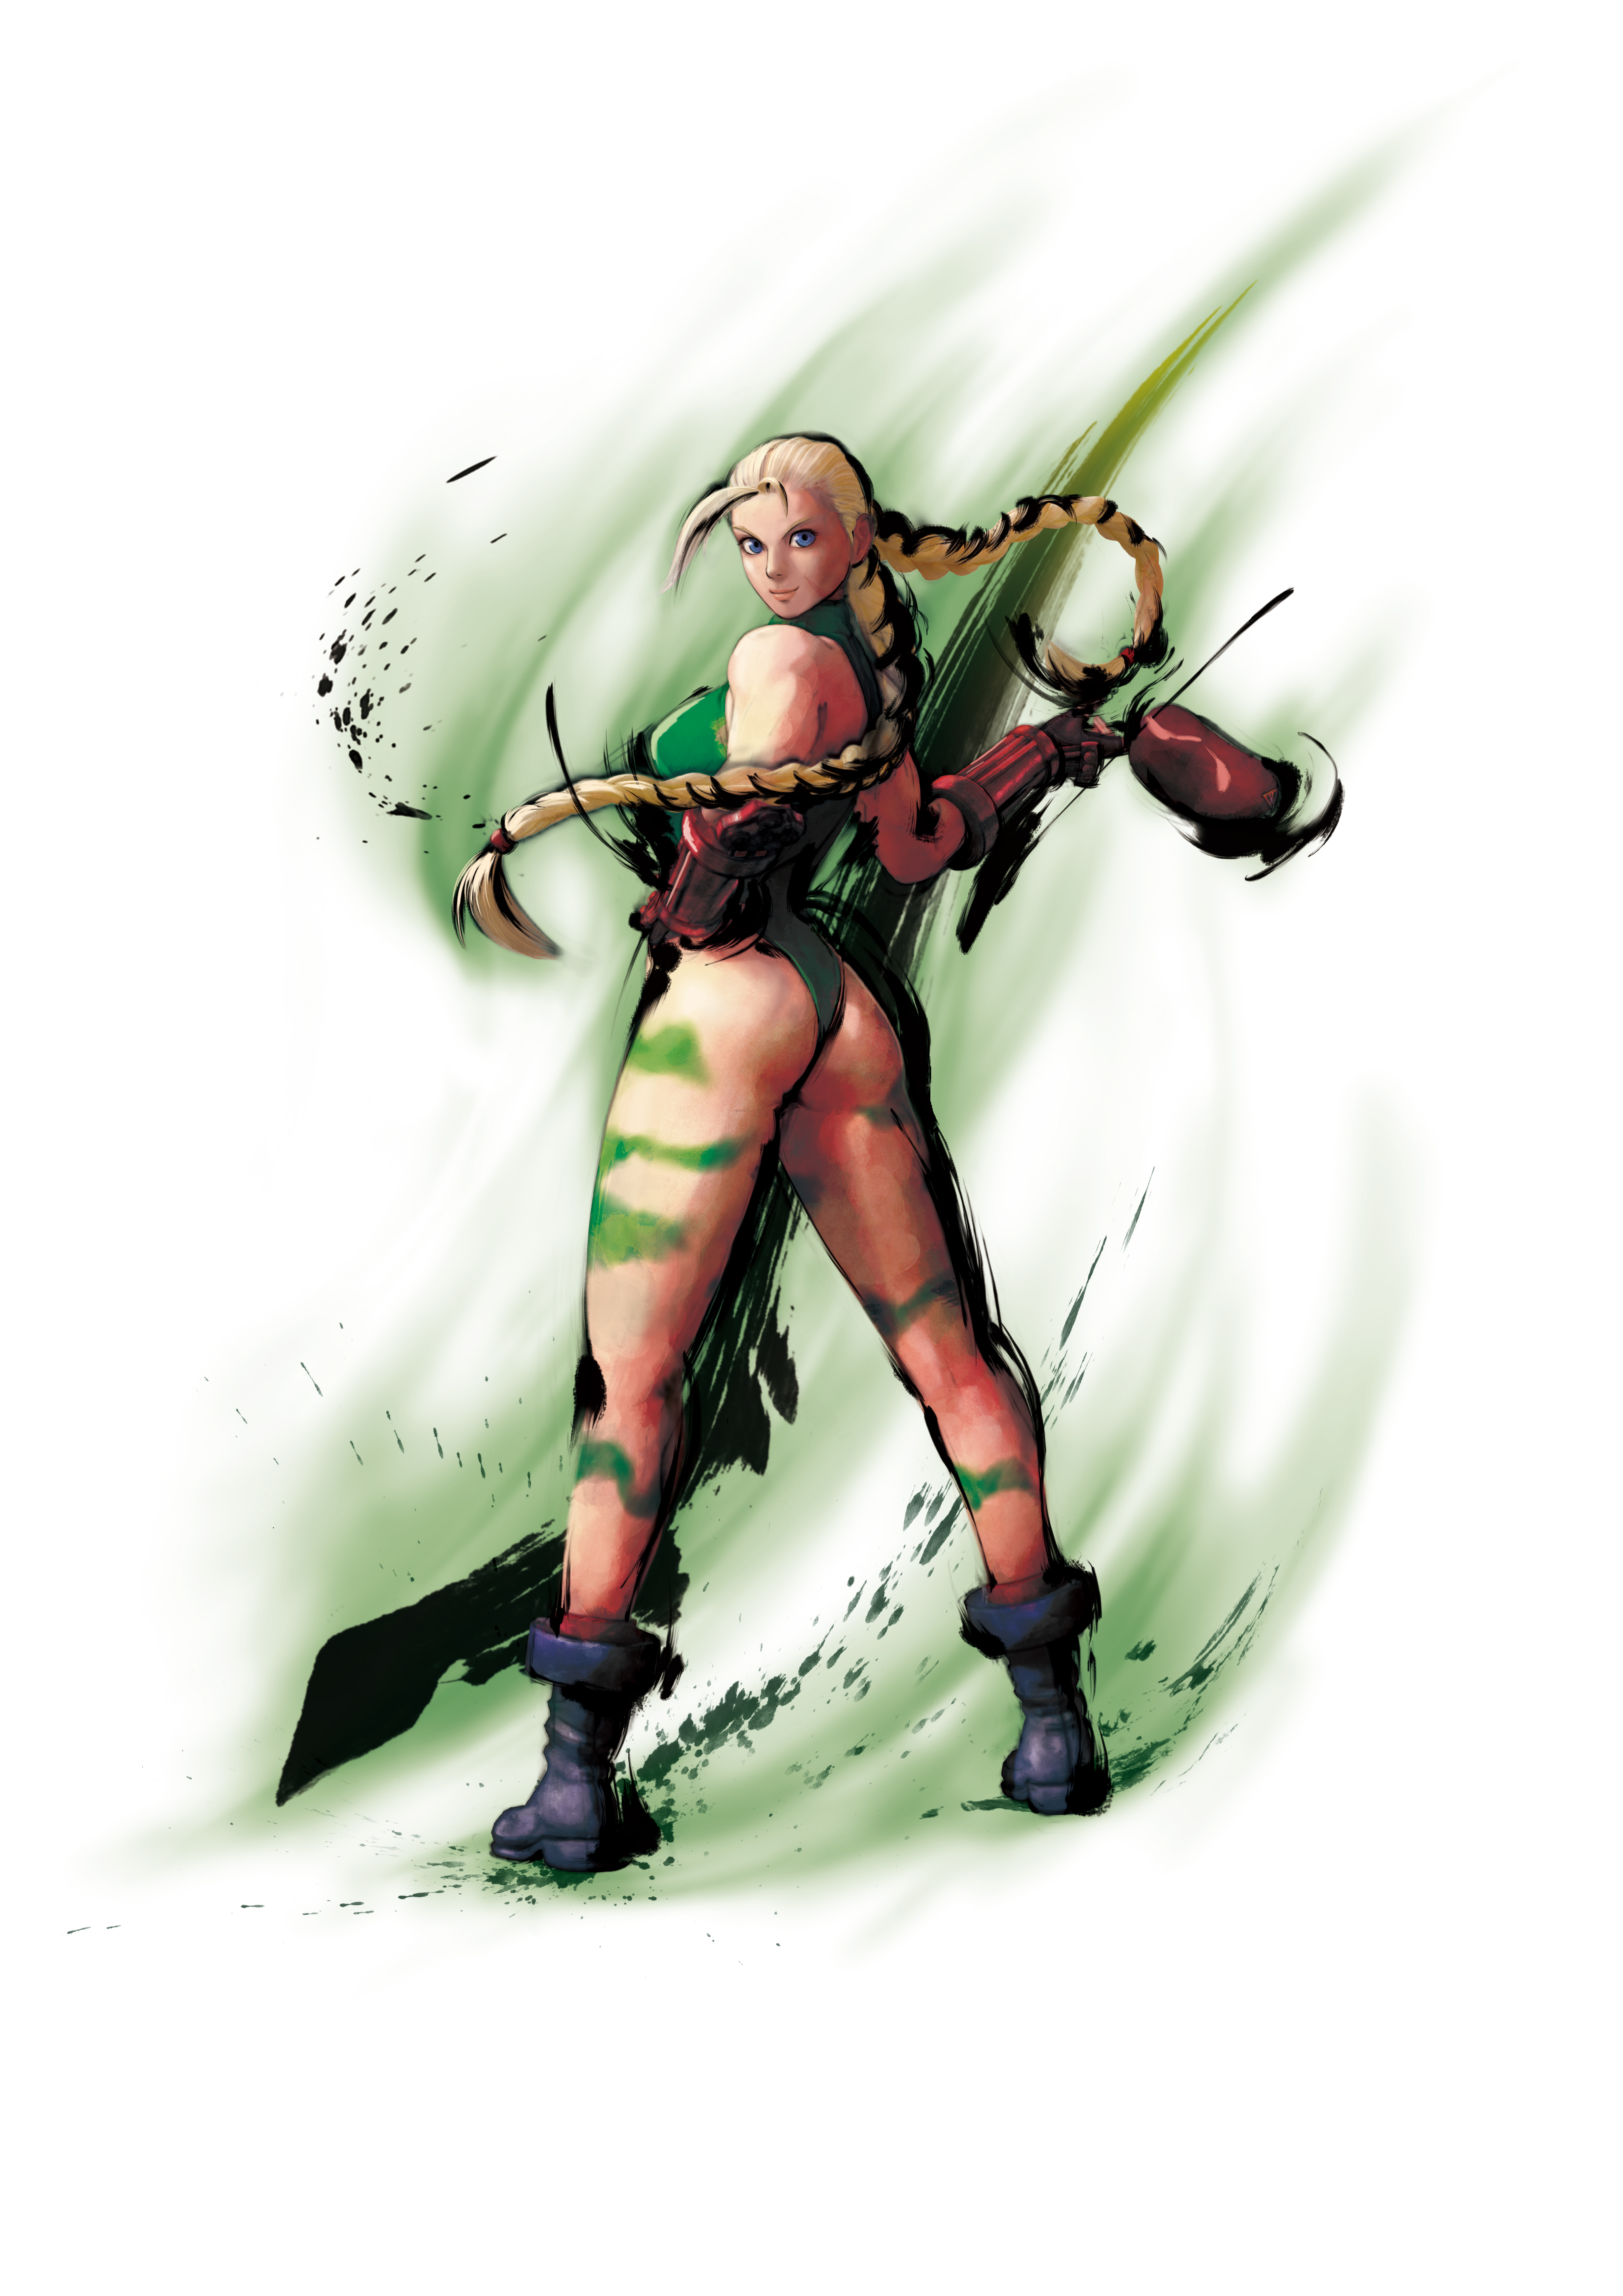 Hentai cammy sf4 adult gallery